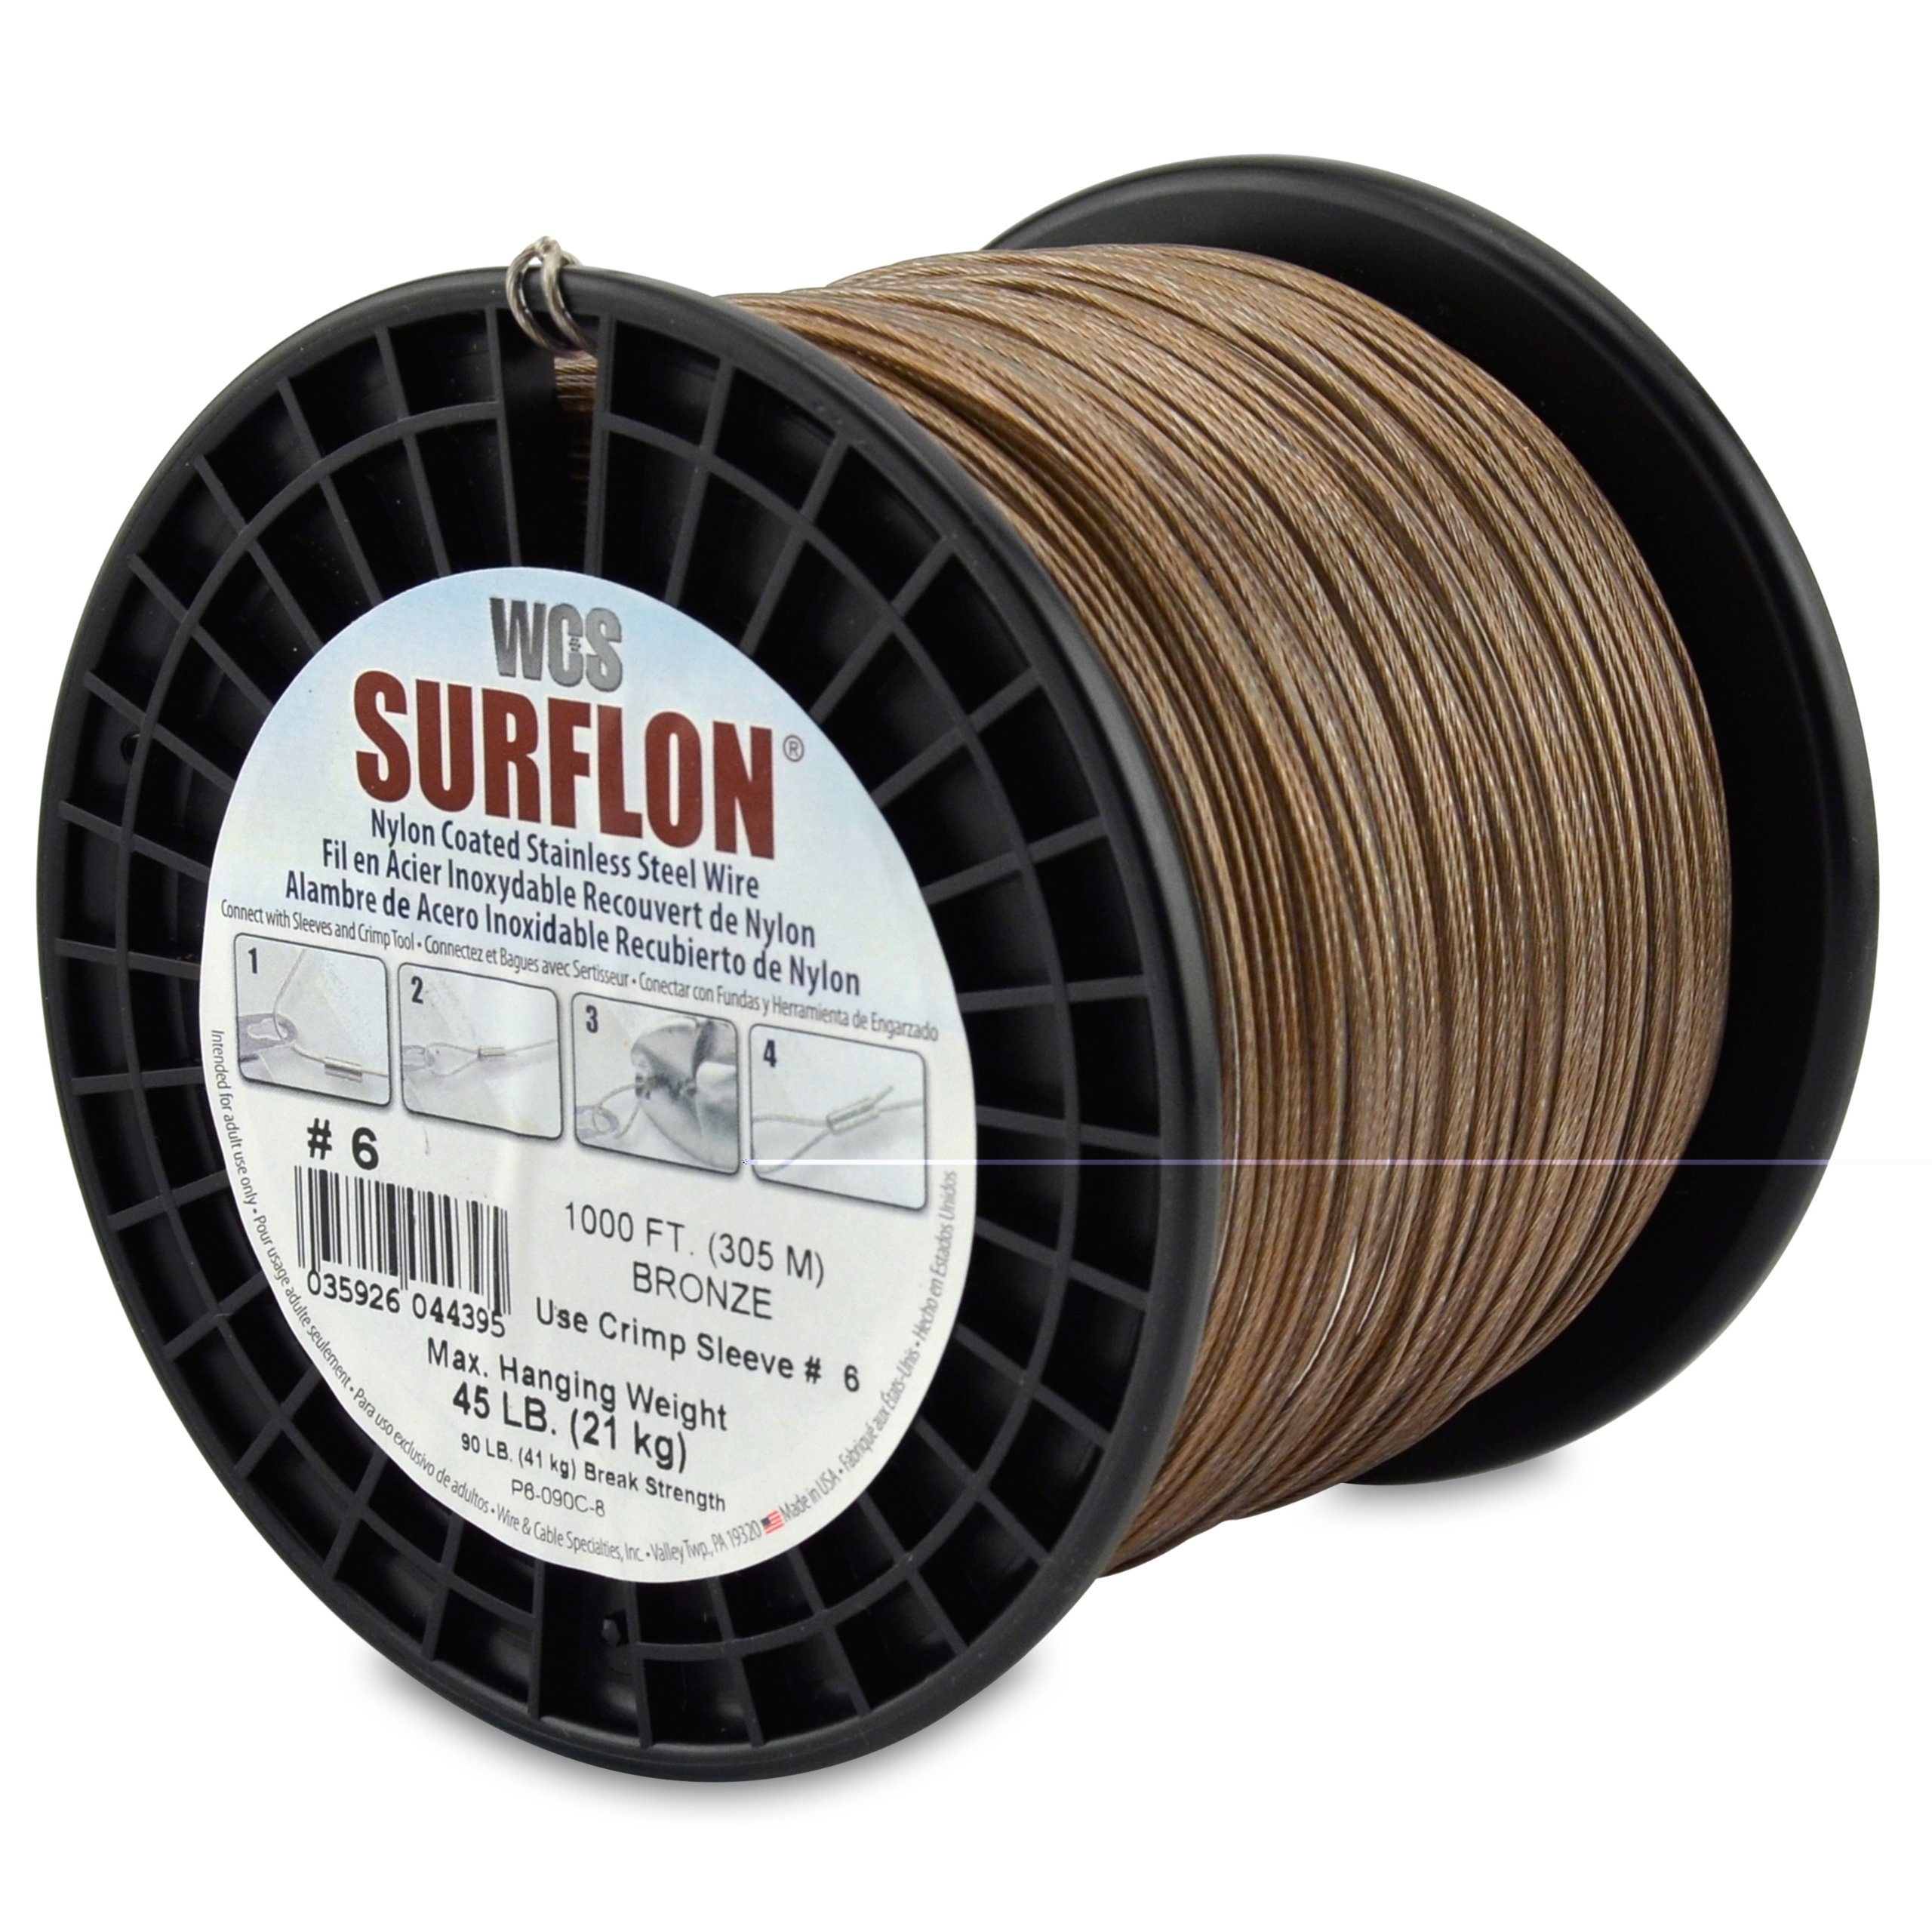 Surflon Size 6 - 45-Pound Break 1000-Feet Crimping Picture Wire Nylon Coated Stainless Steel, Bronze